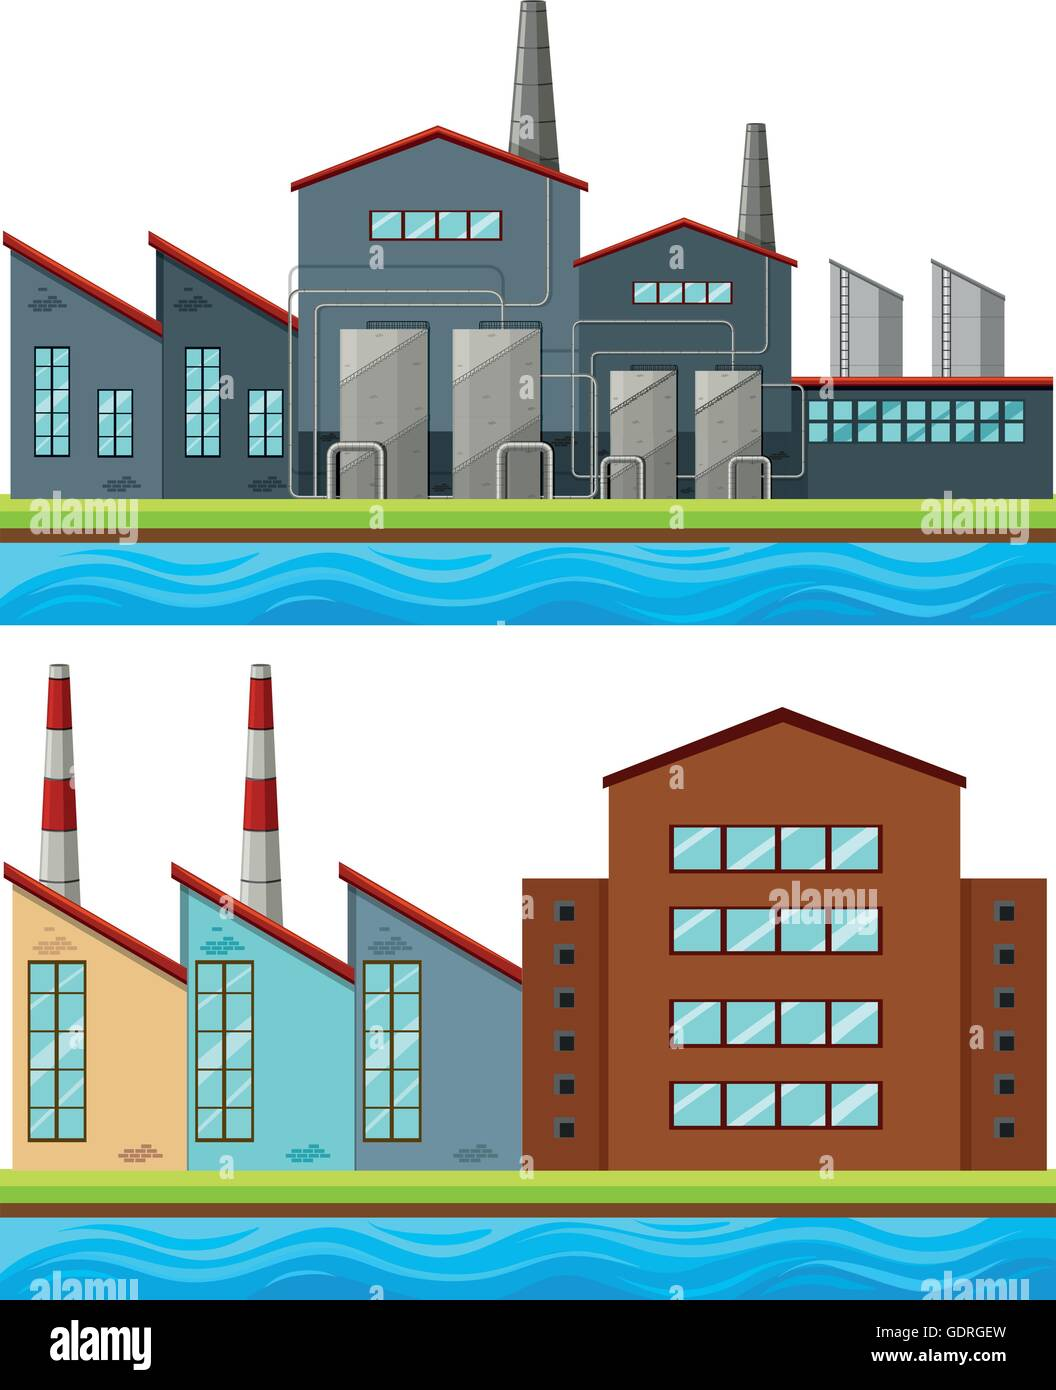 Factory buildings with tall chimneys illustration - Stock Vector